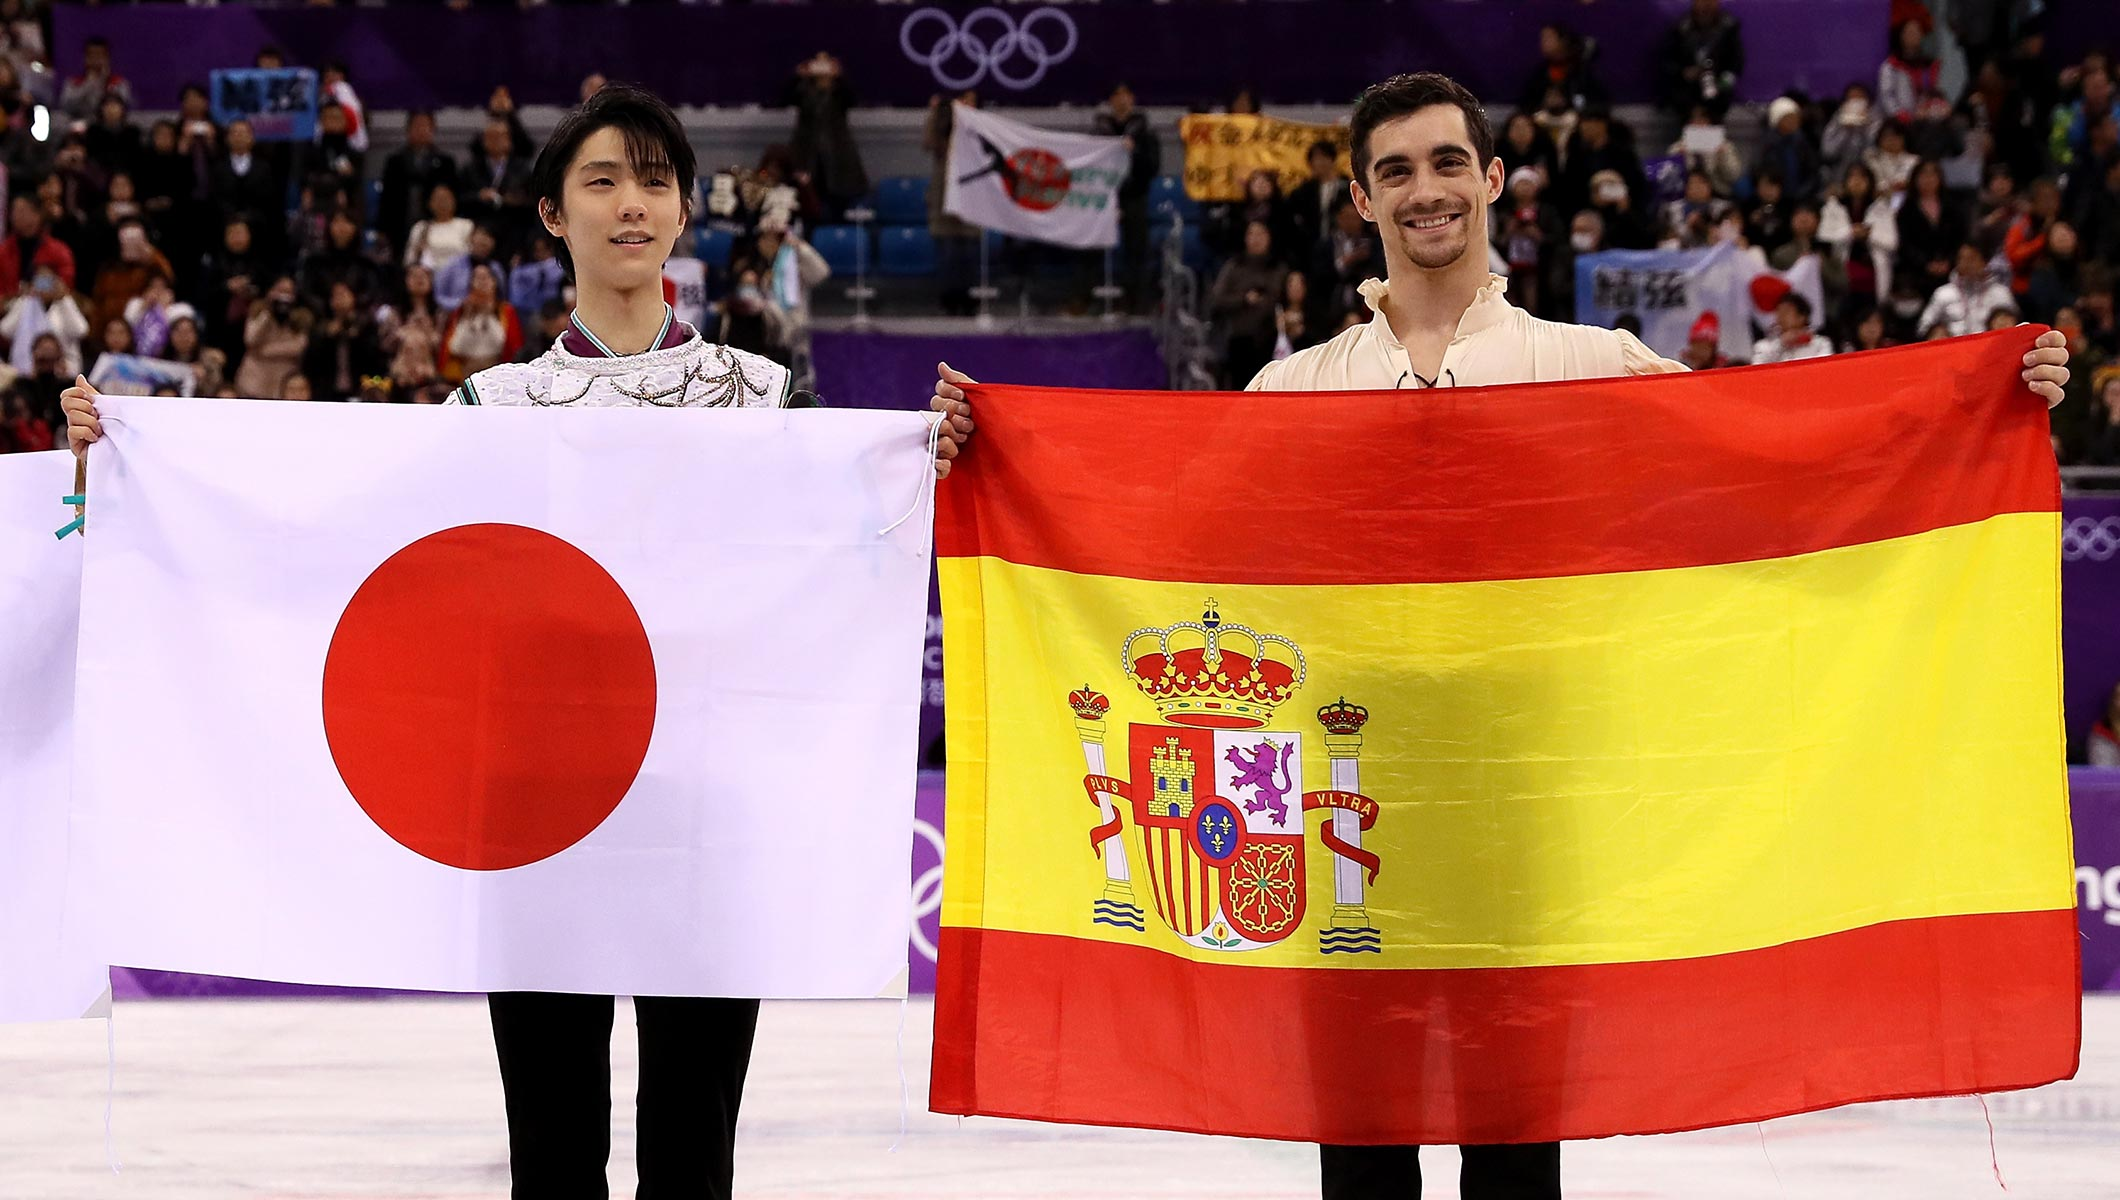 Figure skating stars Hanyu and Fernández share a very